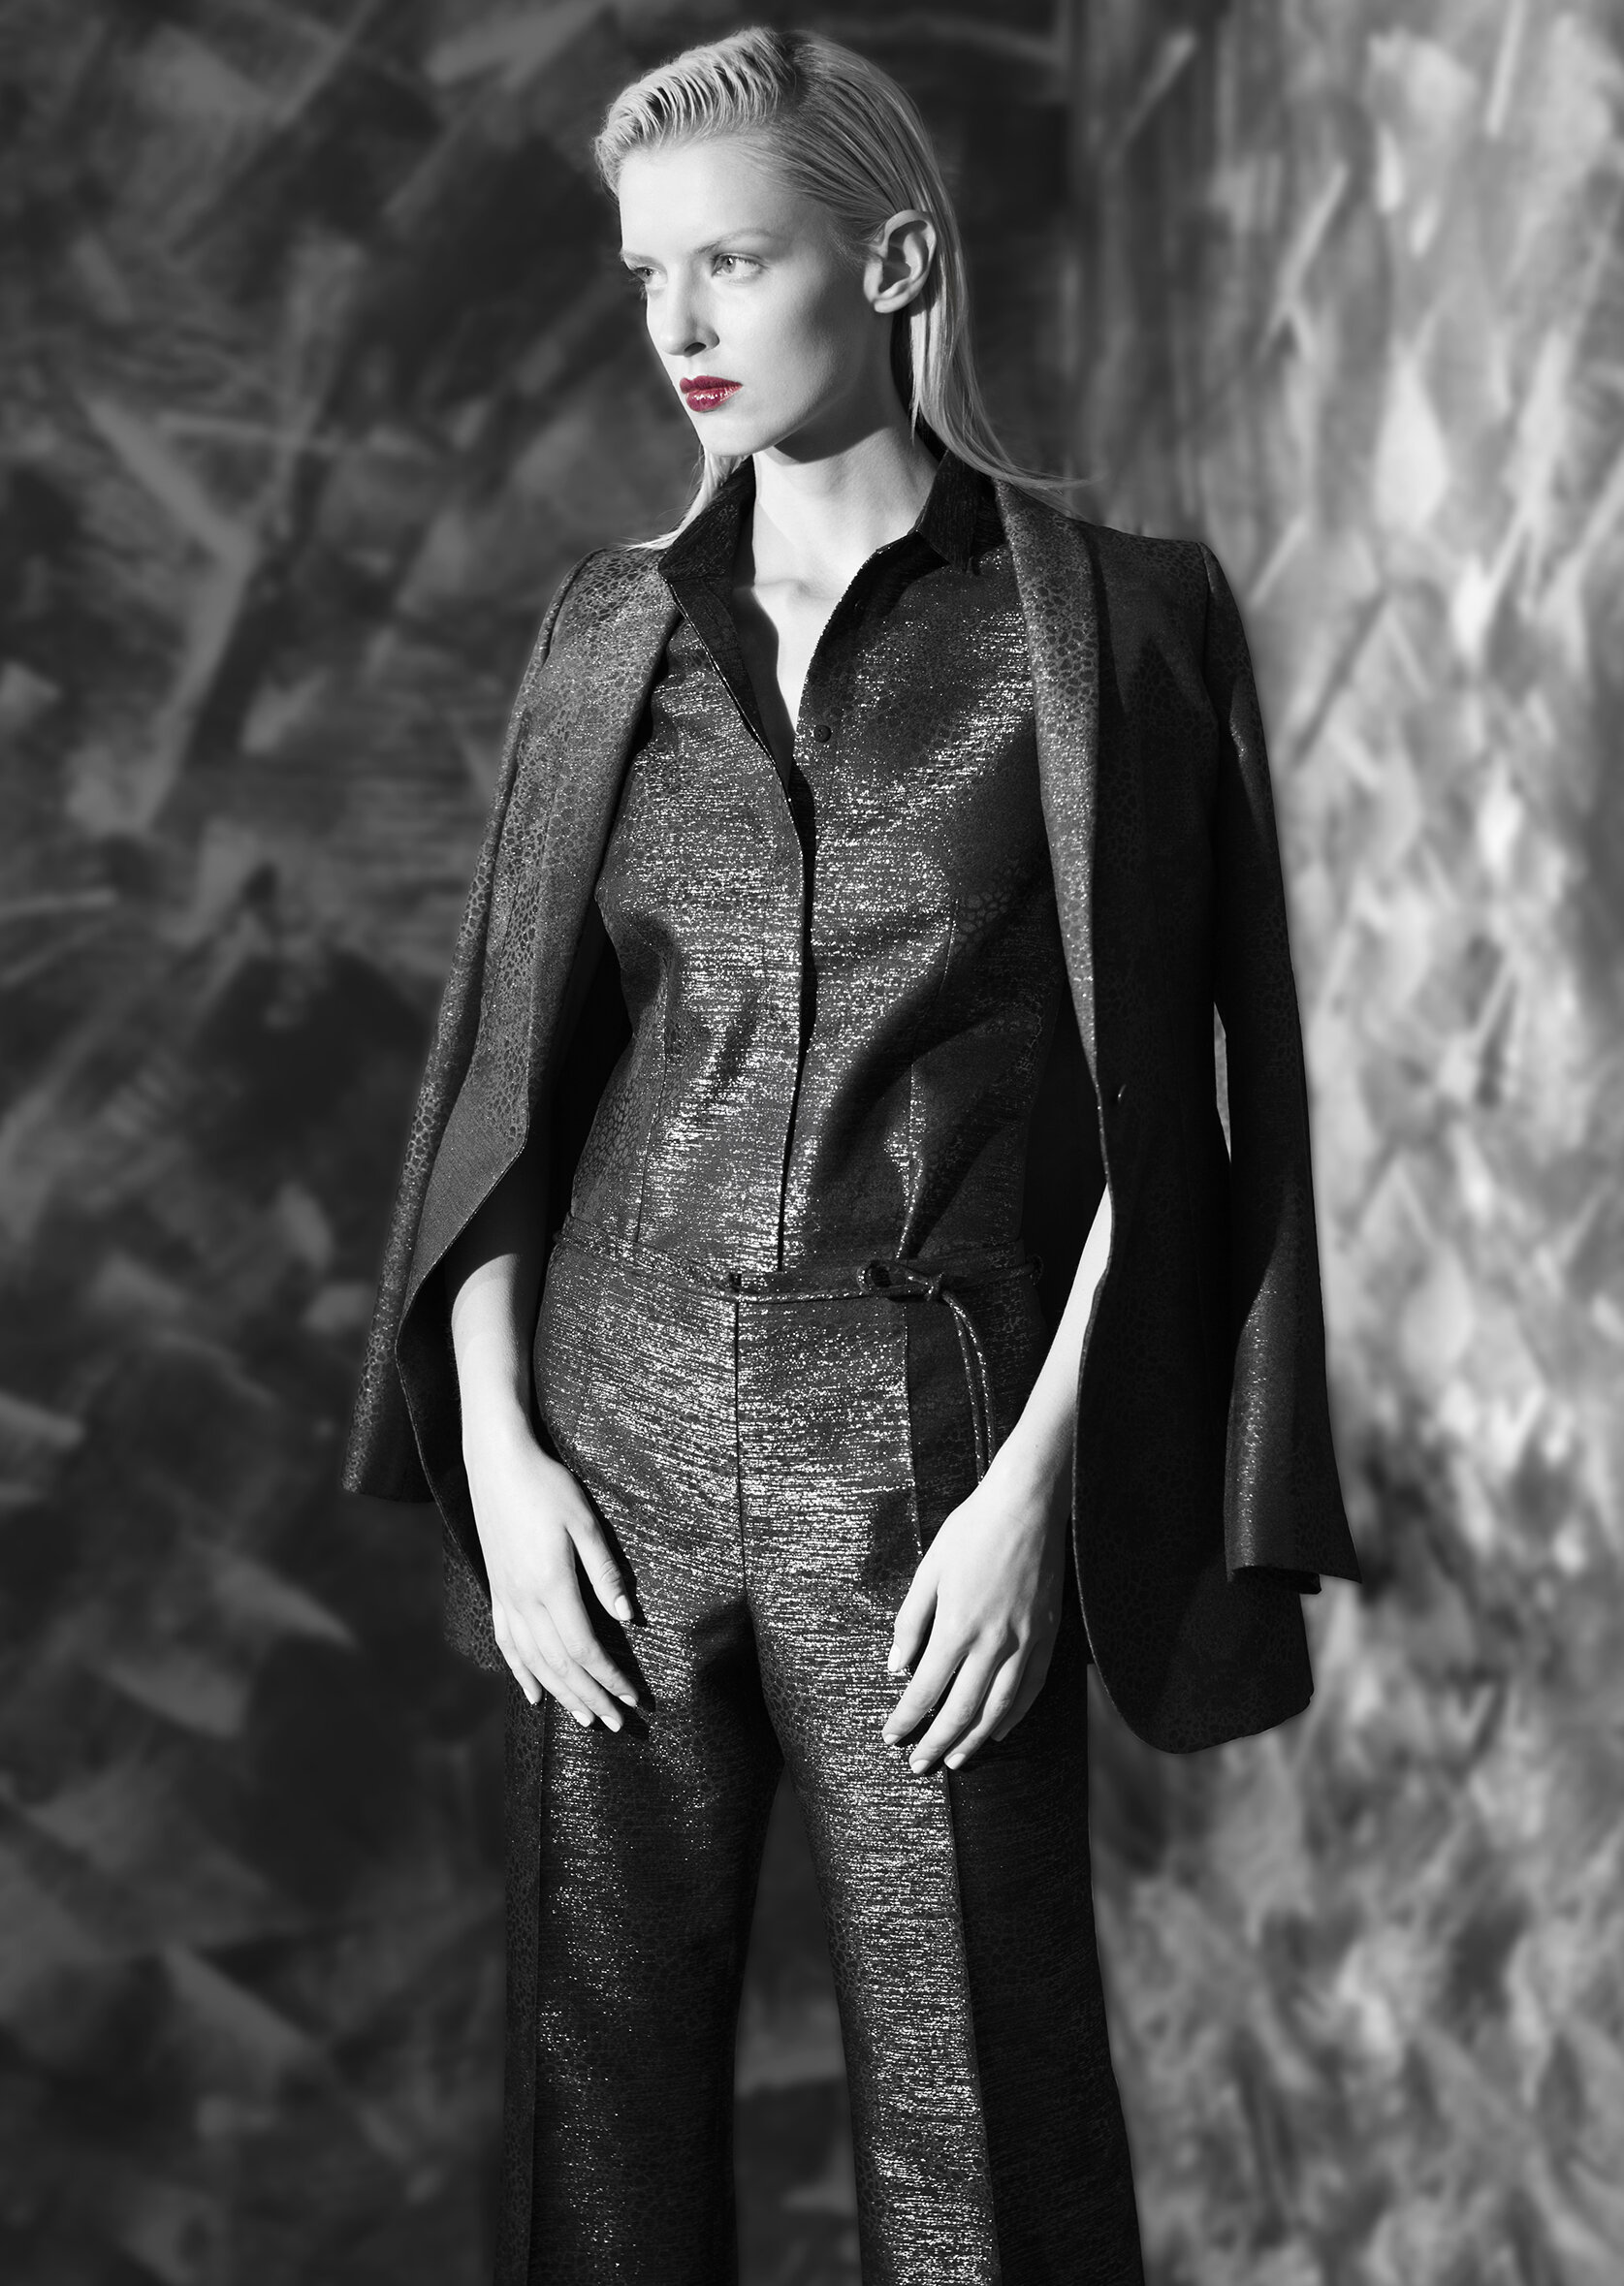 Abstract lame jacquard jacket with belt tie and tapered leg trouser  onyx midnight opal garnet   Abstract lame jacquard sleeveless shirt and wide leg trouser with belt tie  onyx midnight opal garnet